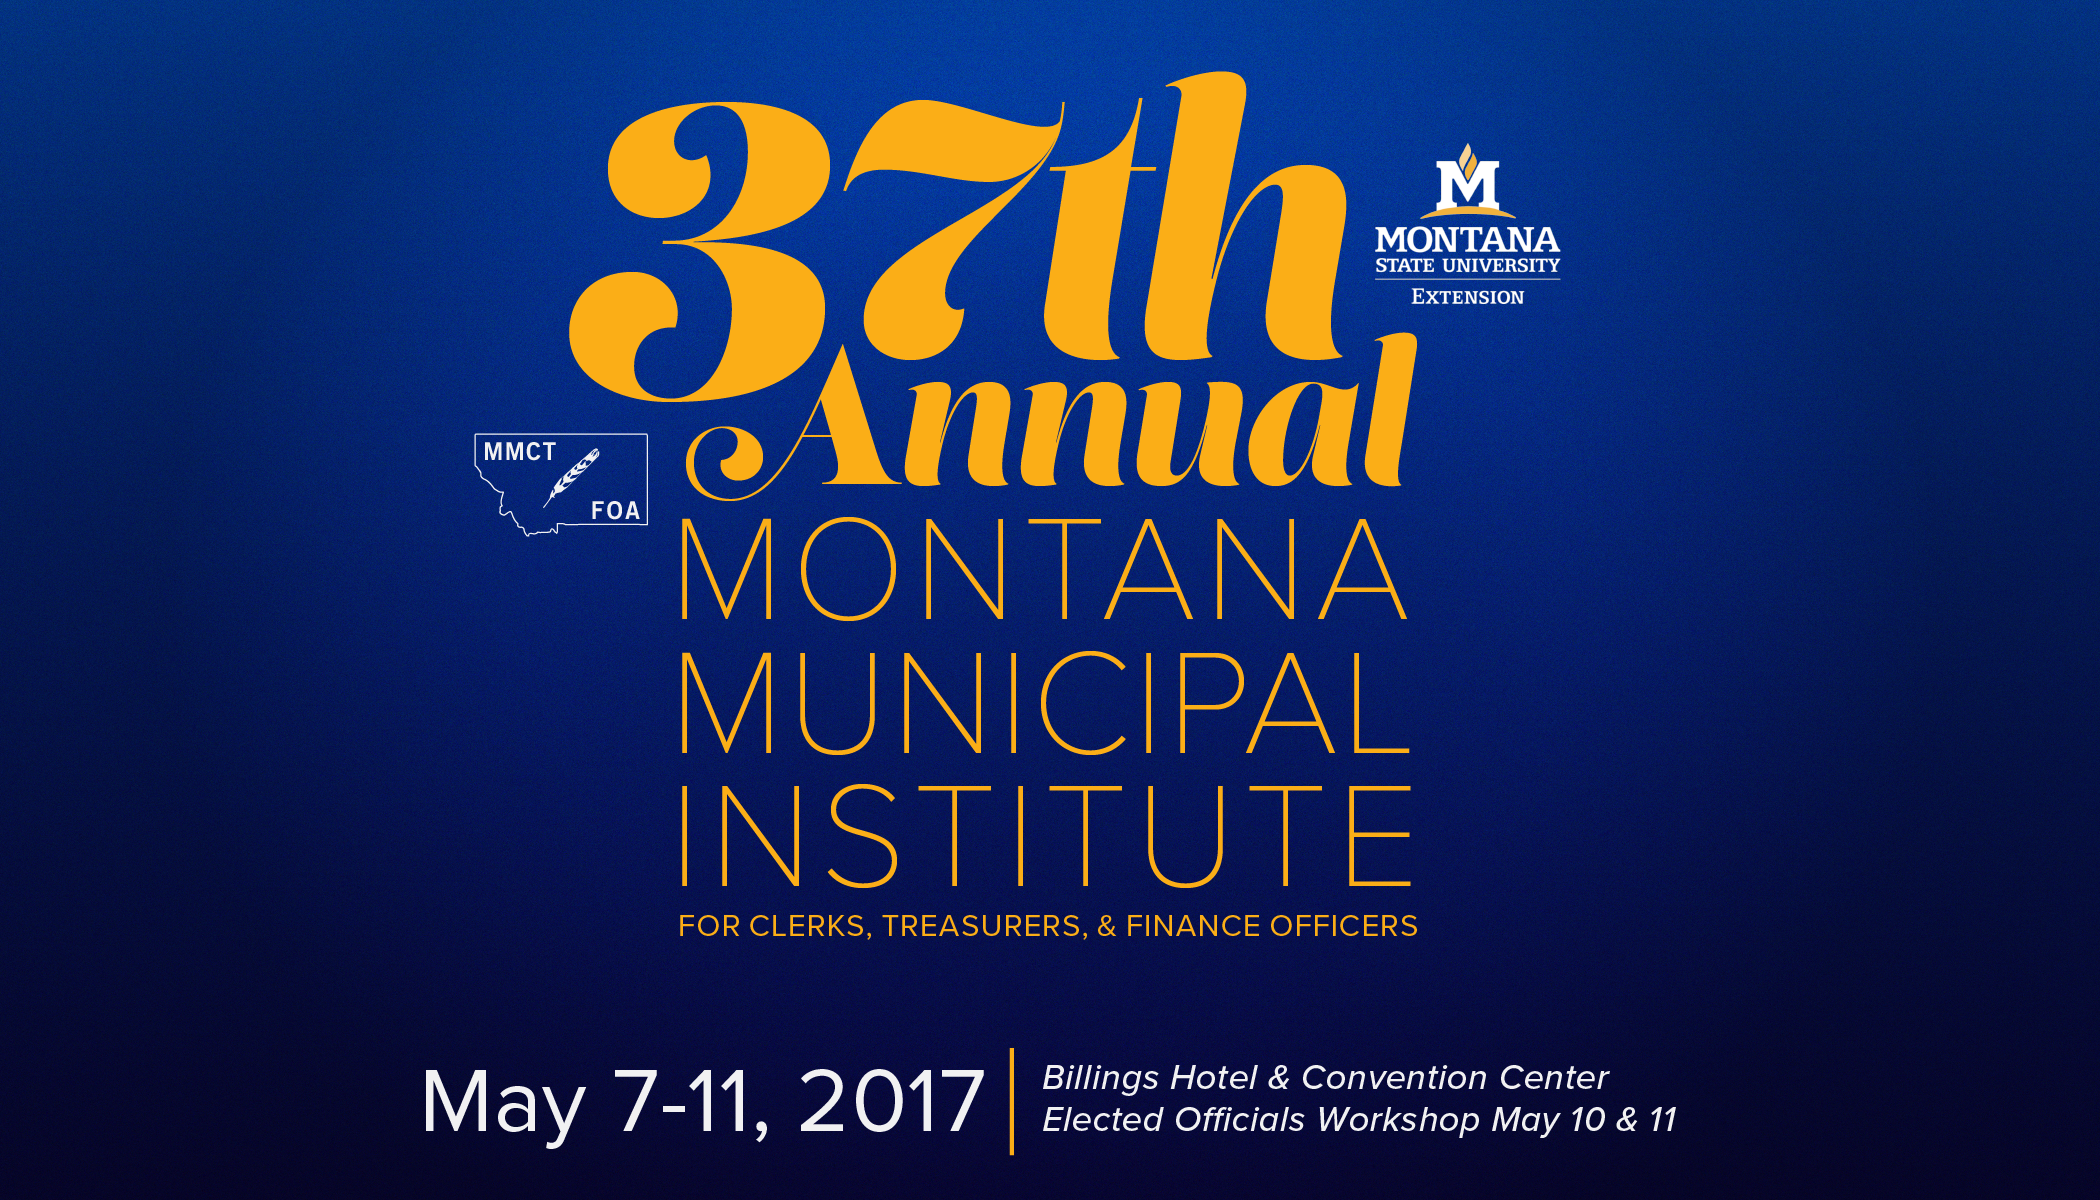 37th Annual Municipal Institute